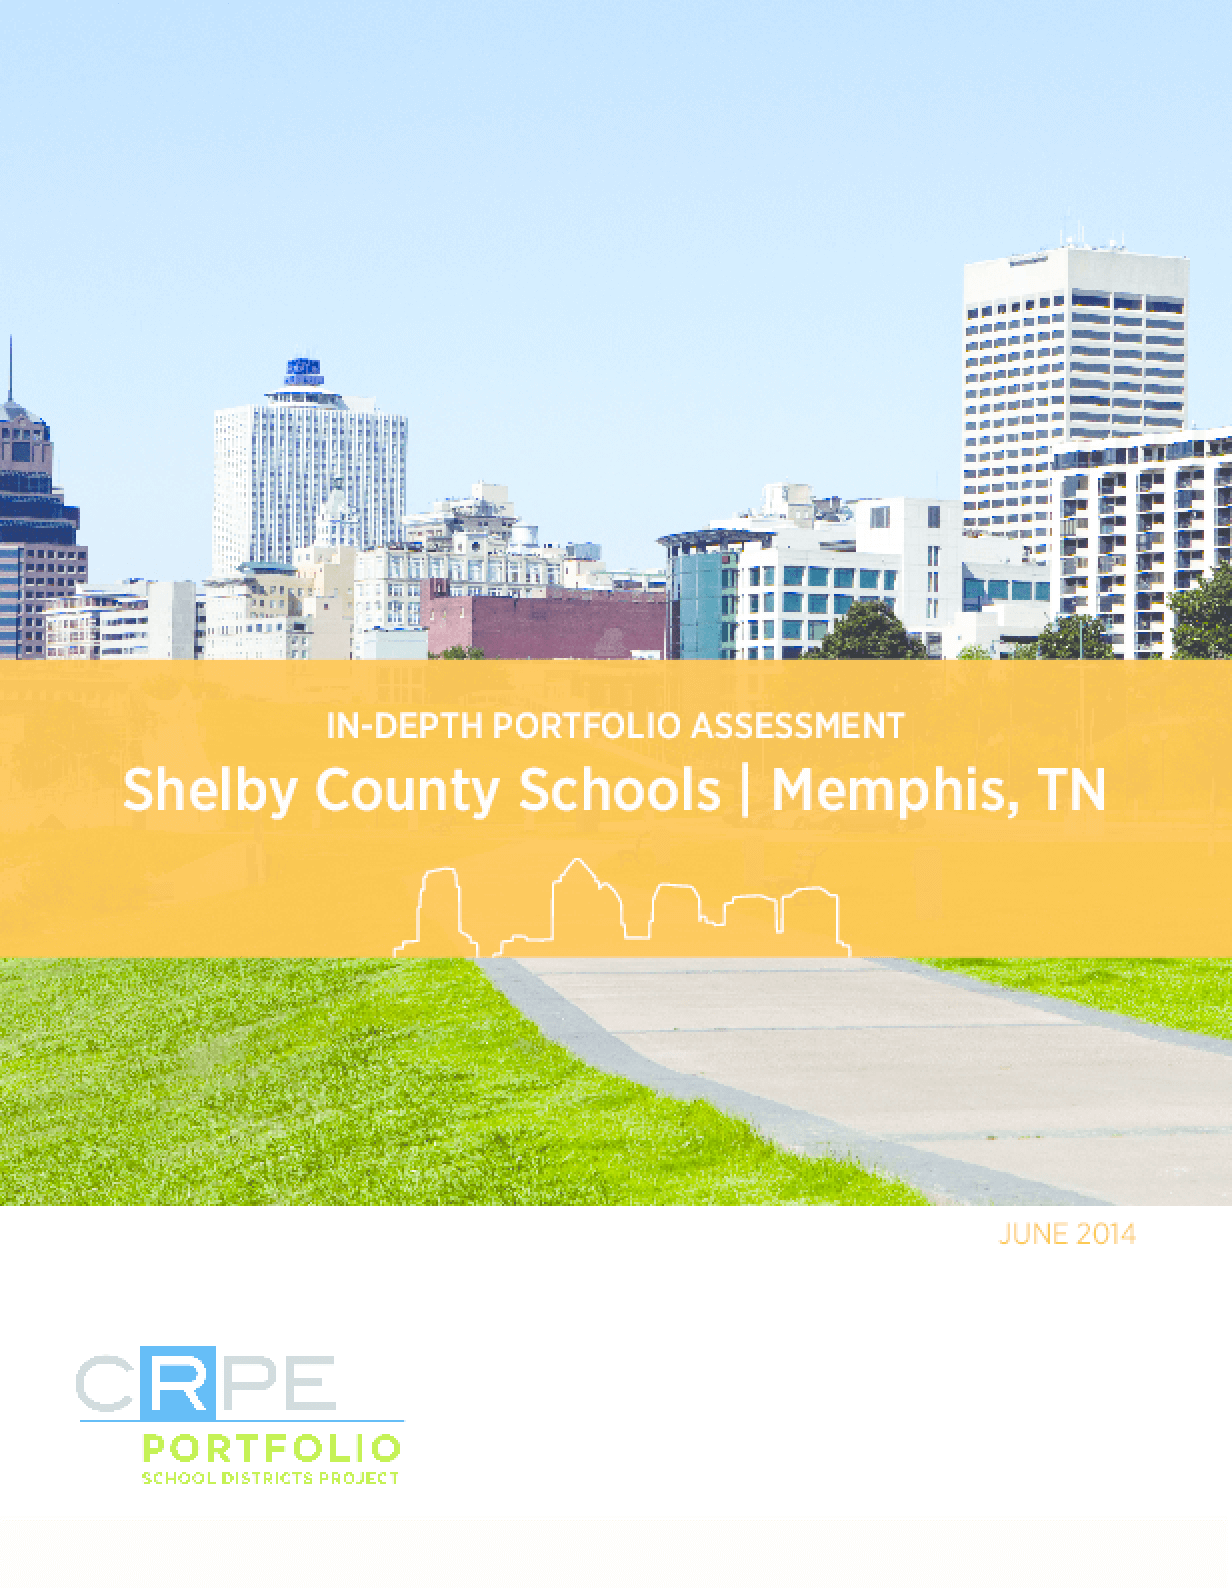 In-Depth Portfolio Assessment: Shelby County Schools, Memphis, TN